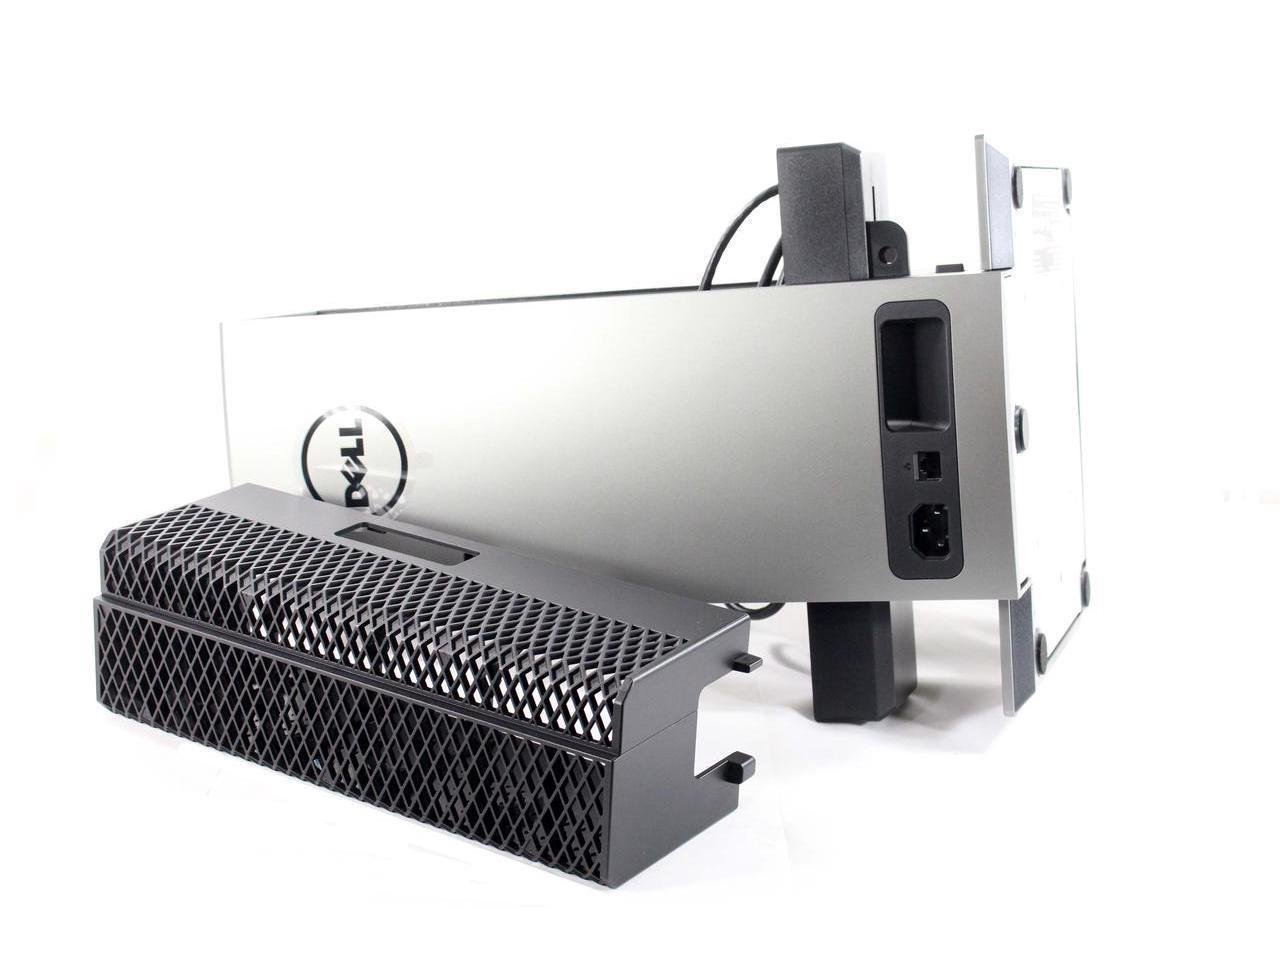 New Genuine Dell OptiPlex 7040 5040 3040 3046 1 RJ-45 And 1 Power IEC 60320 C14 Port Small Form Factor All In One Stand OSS17 6P8CR 06P8CR CN-06P8CR by Dell (Image #1)